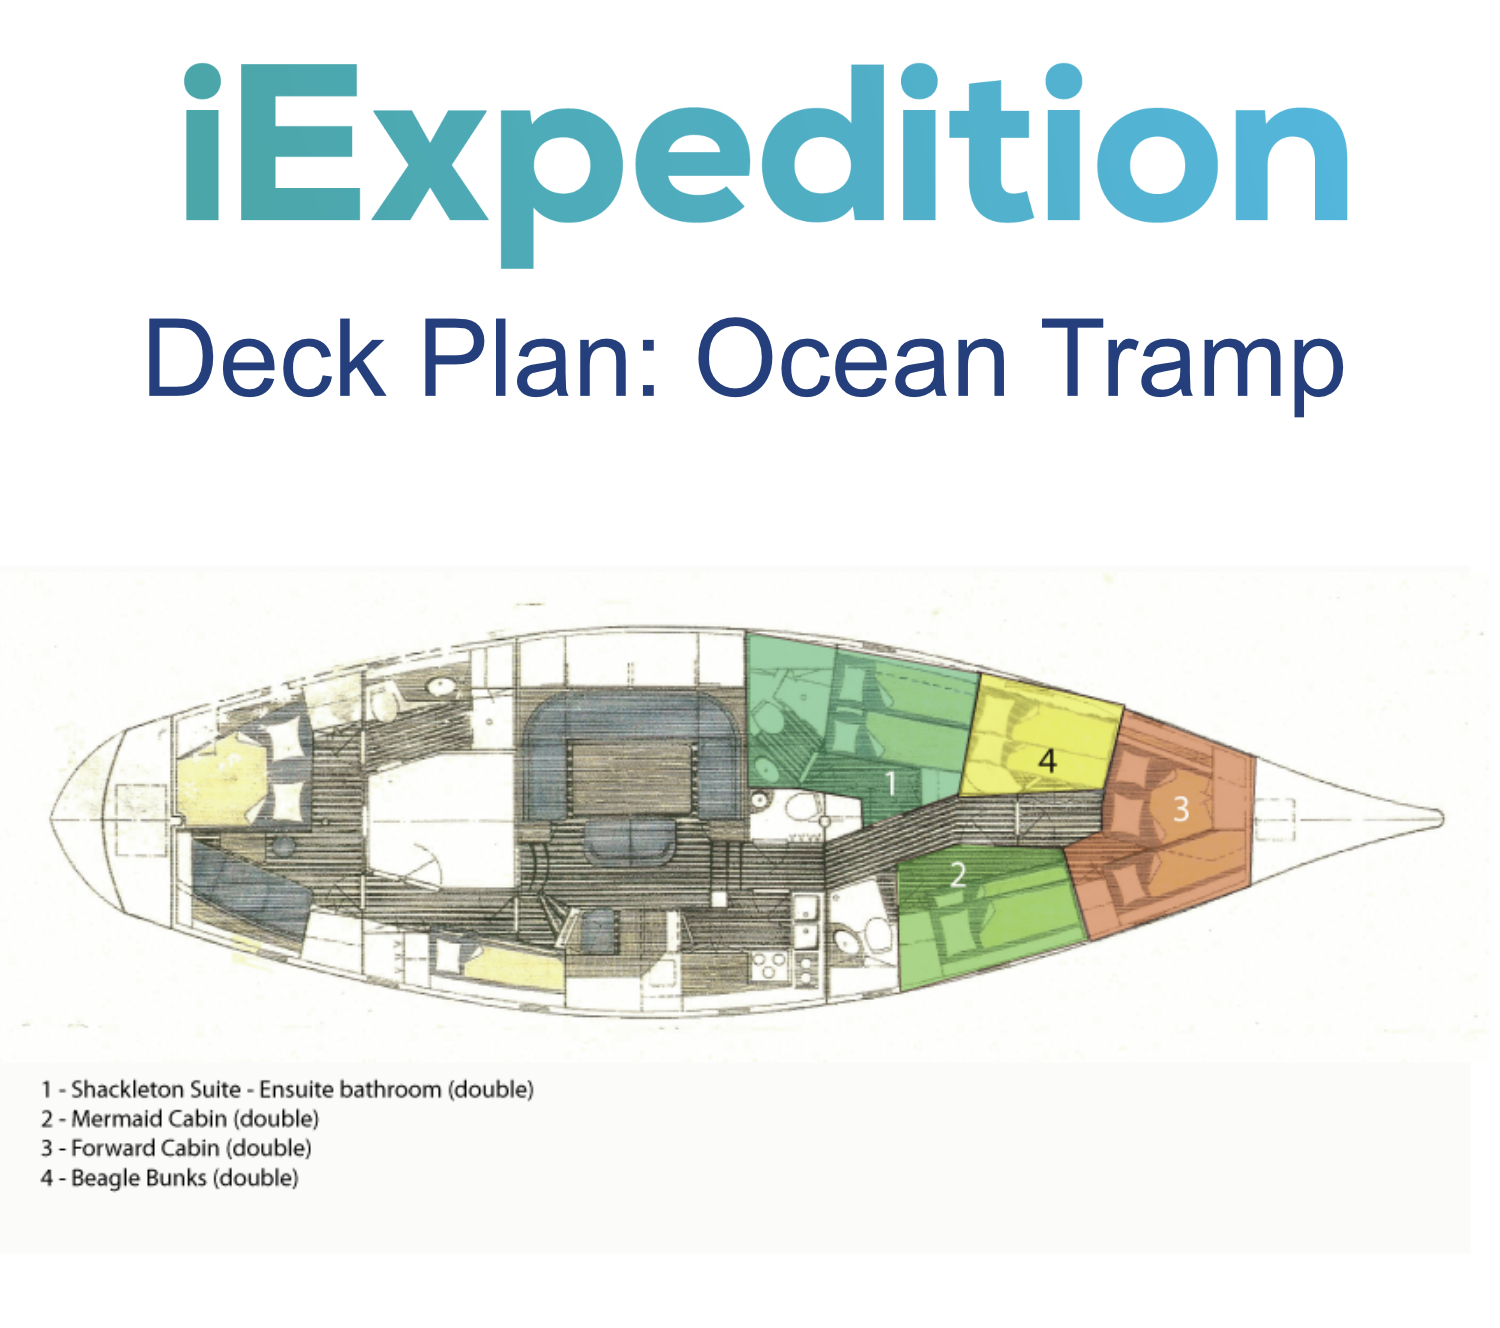 Ocean tramp deck plan